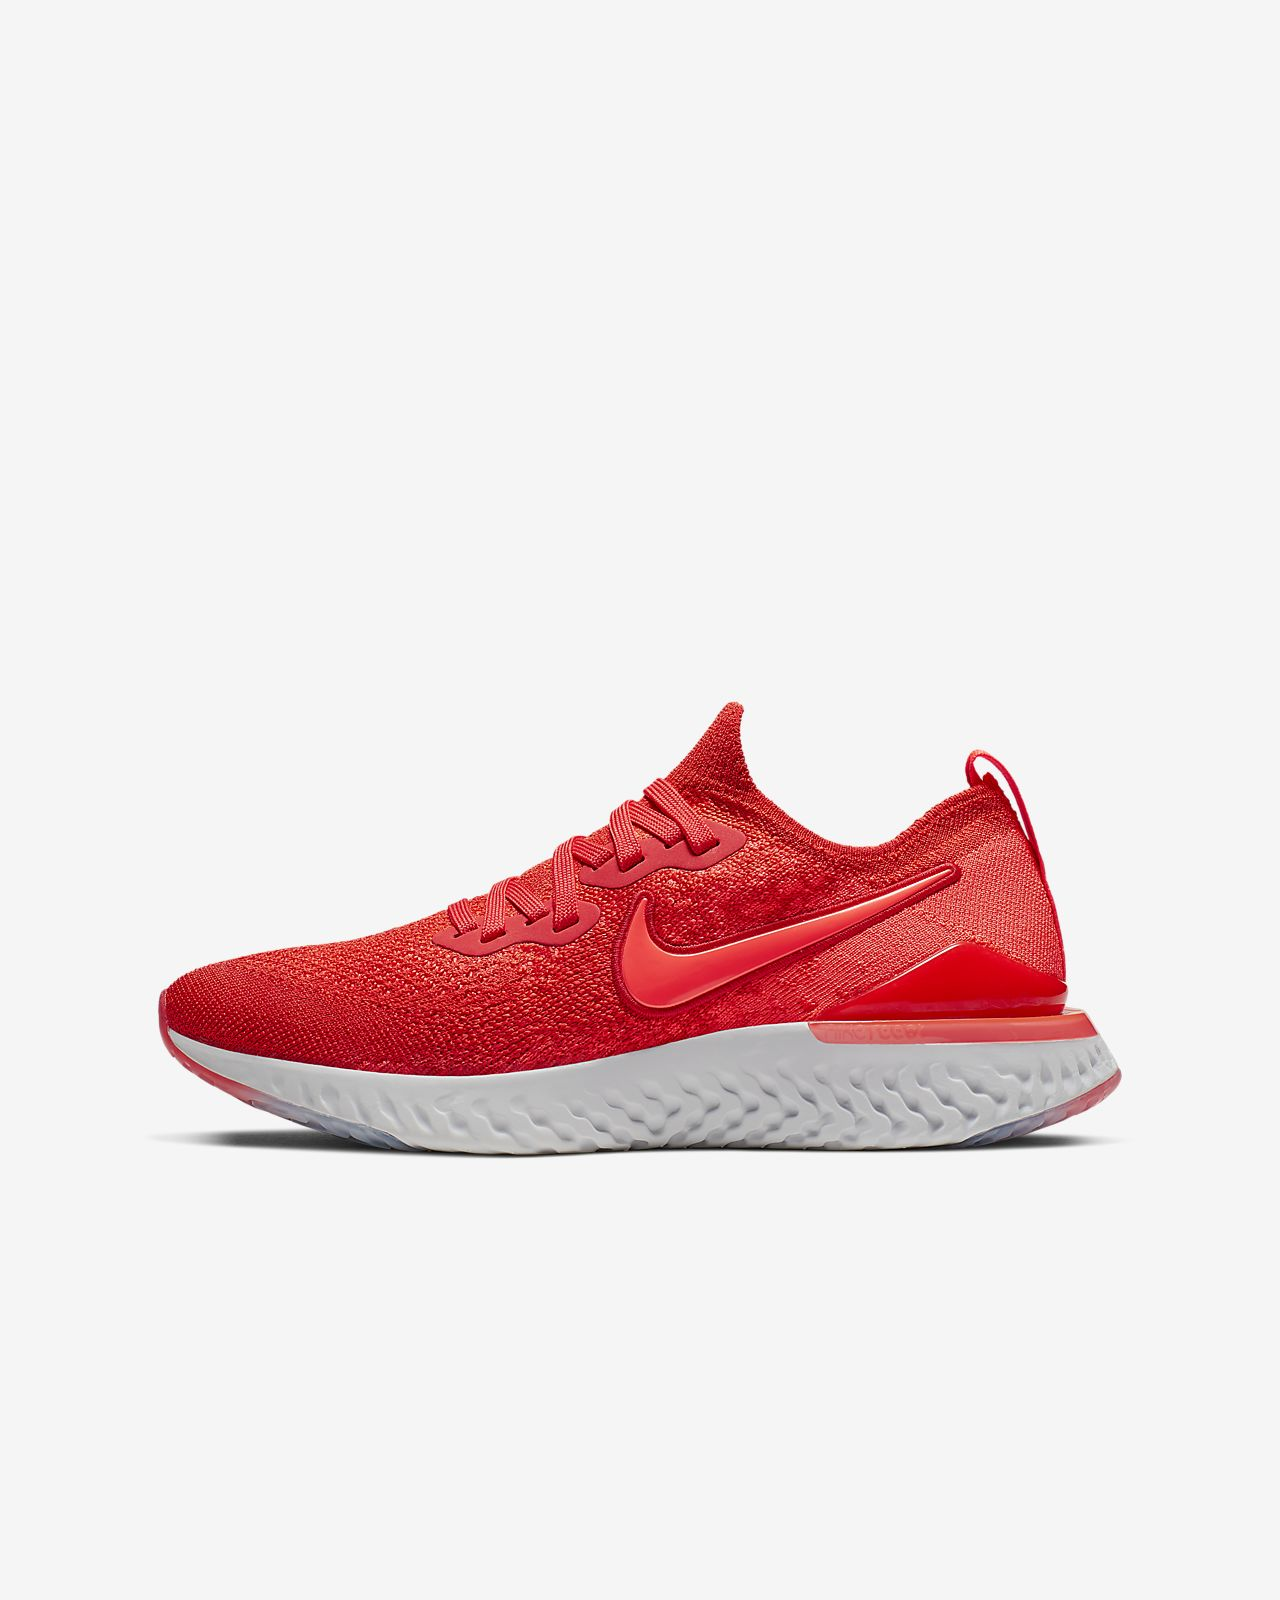 Nike Epic React Flyknit 2 (GS) 大童跑步童鞋